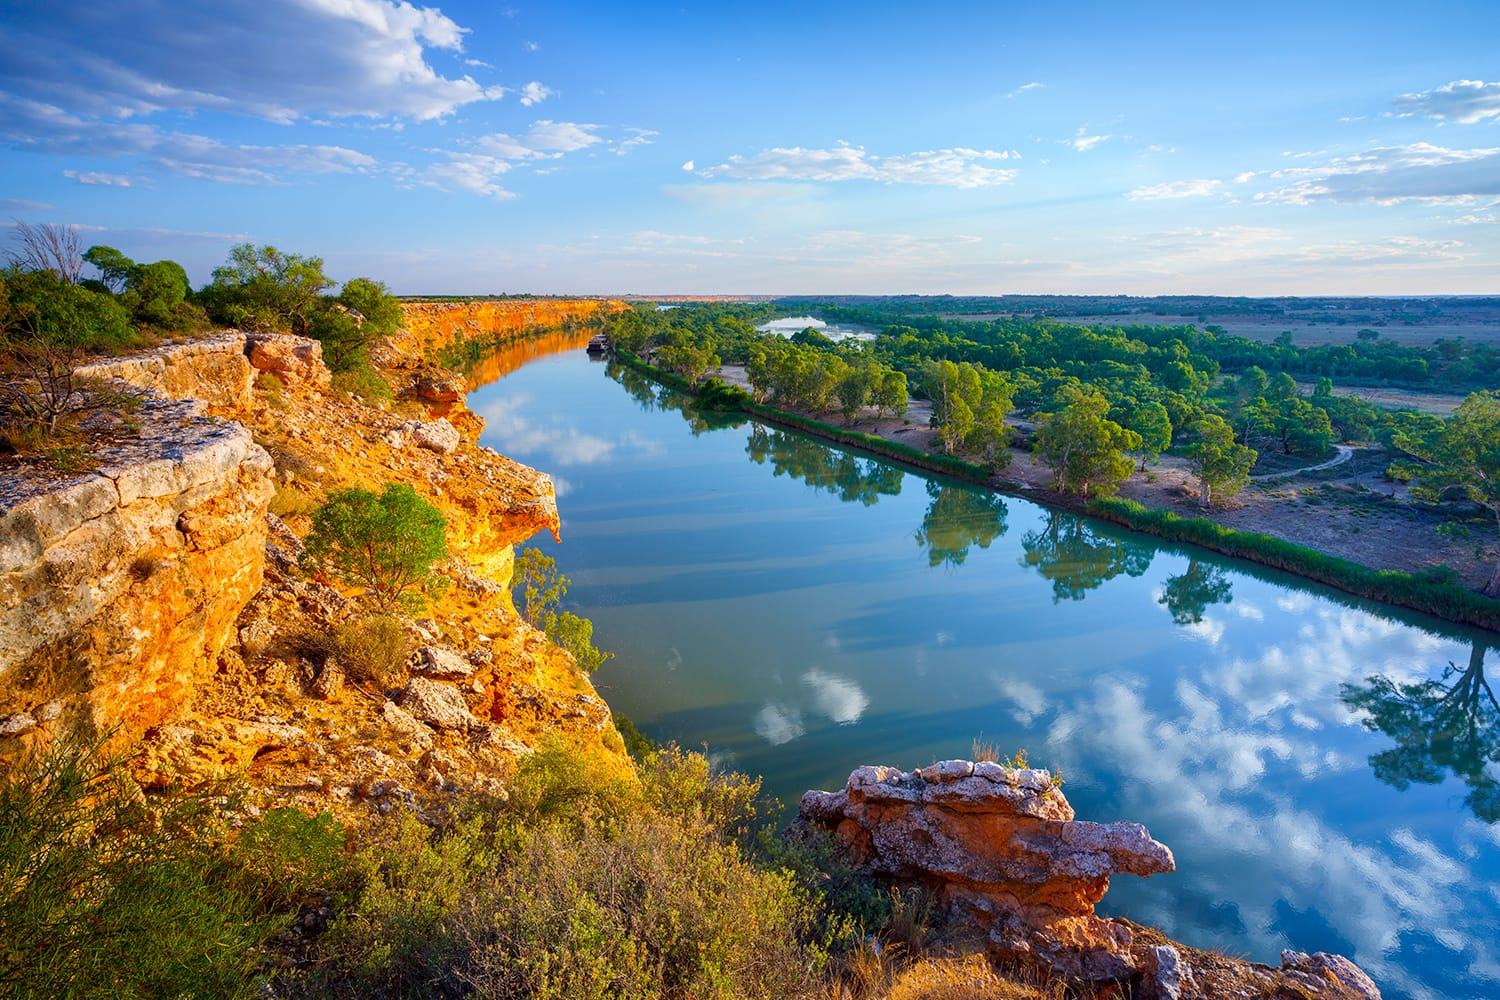 Golden glow on cliffs on the Murray River, South Australia